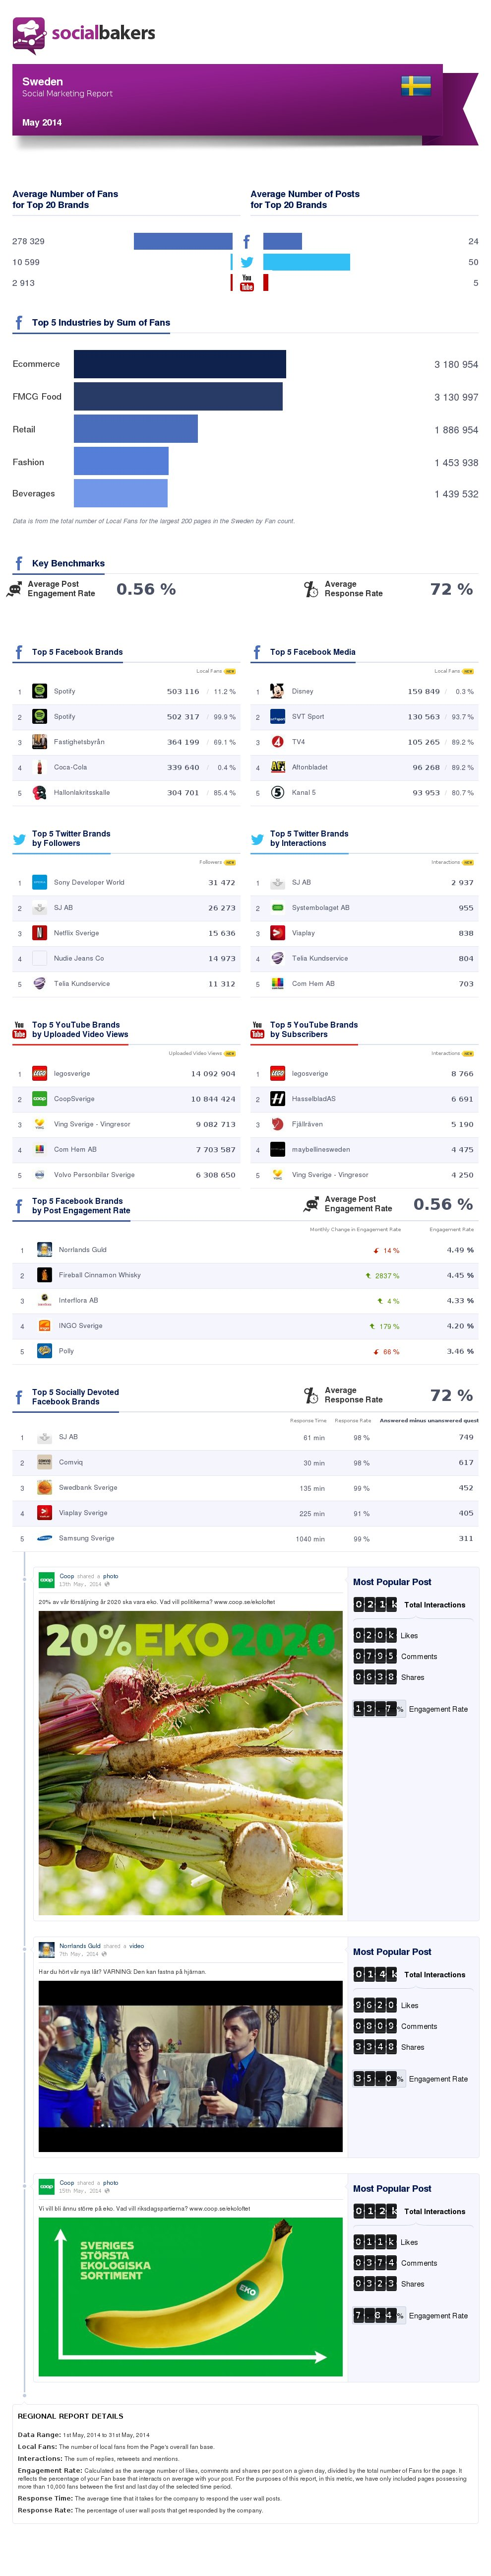 may-2014-social-marketing-report-sweden